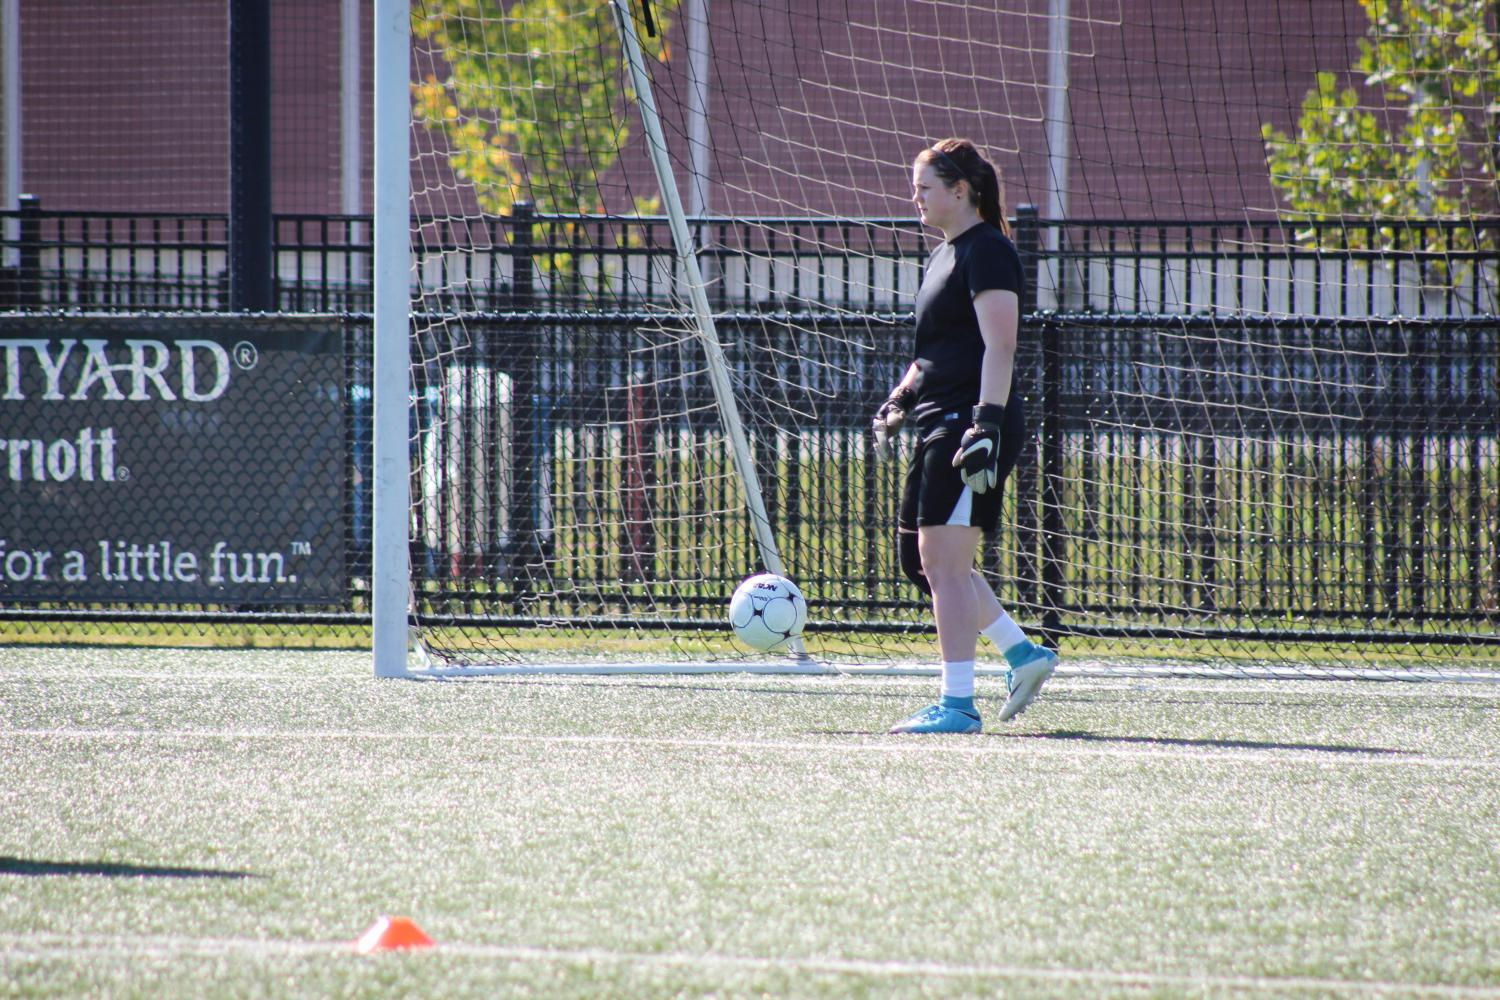 Lucie+Ashmore%2C+senior+co-captain+of+the+team%2C+practices+as+goalkeeper+before+the+season+starts.